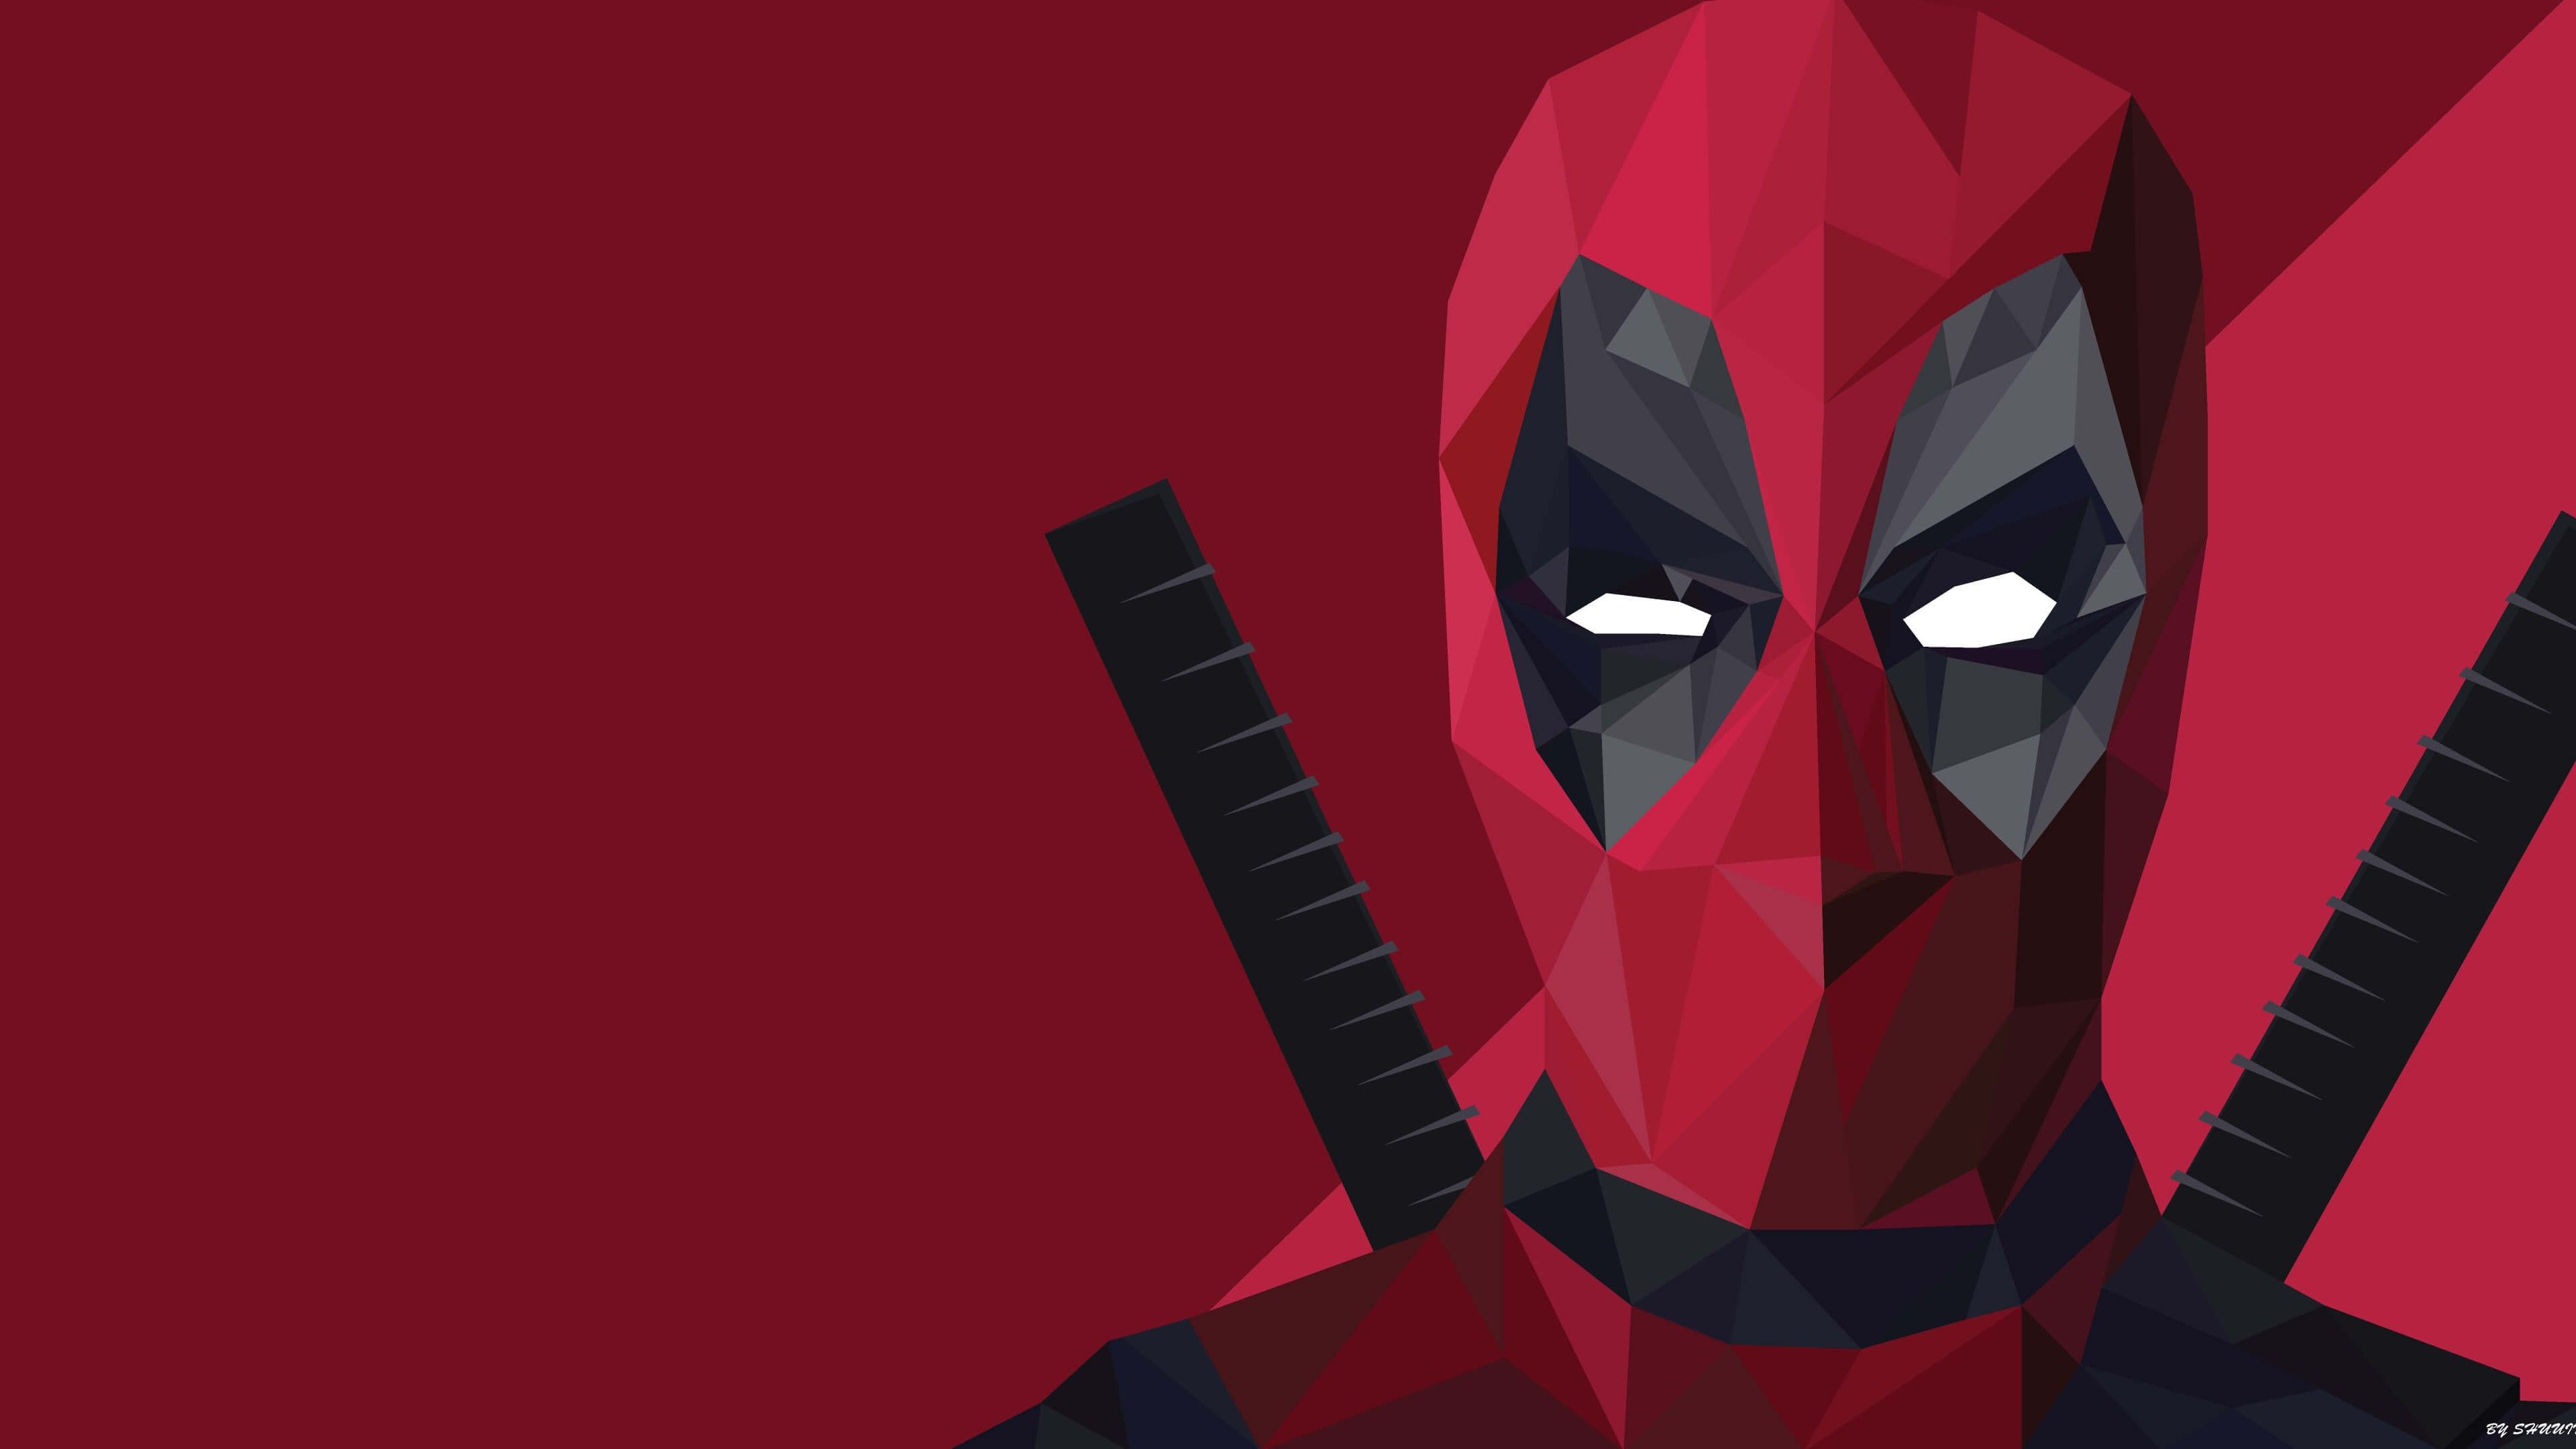 Imgur The Most Awesome Images On The Internet Deadpool Wallpaper Deadpool Wallpaper Desktop Deadpool Hd Wallpaper